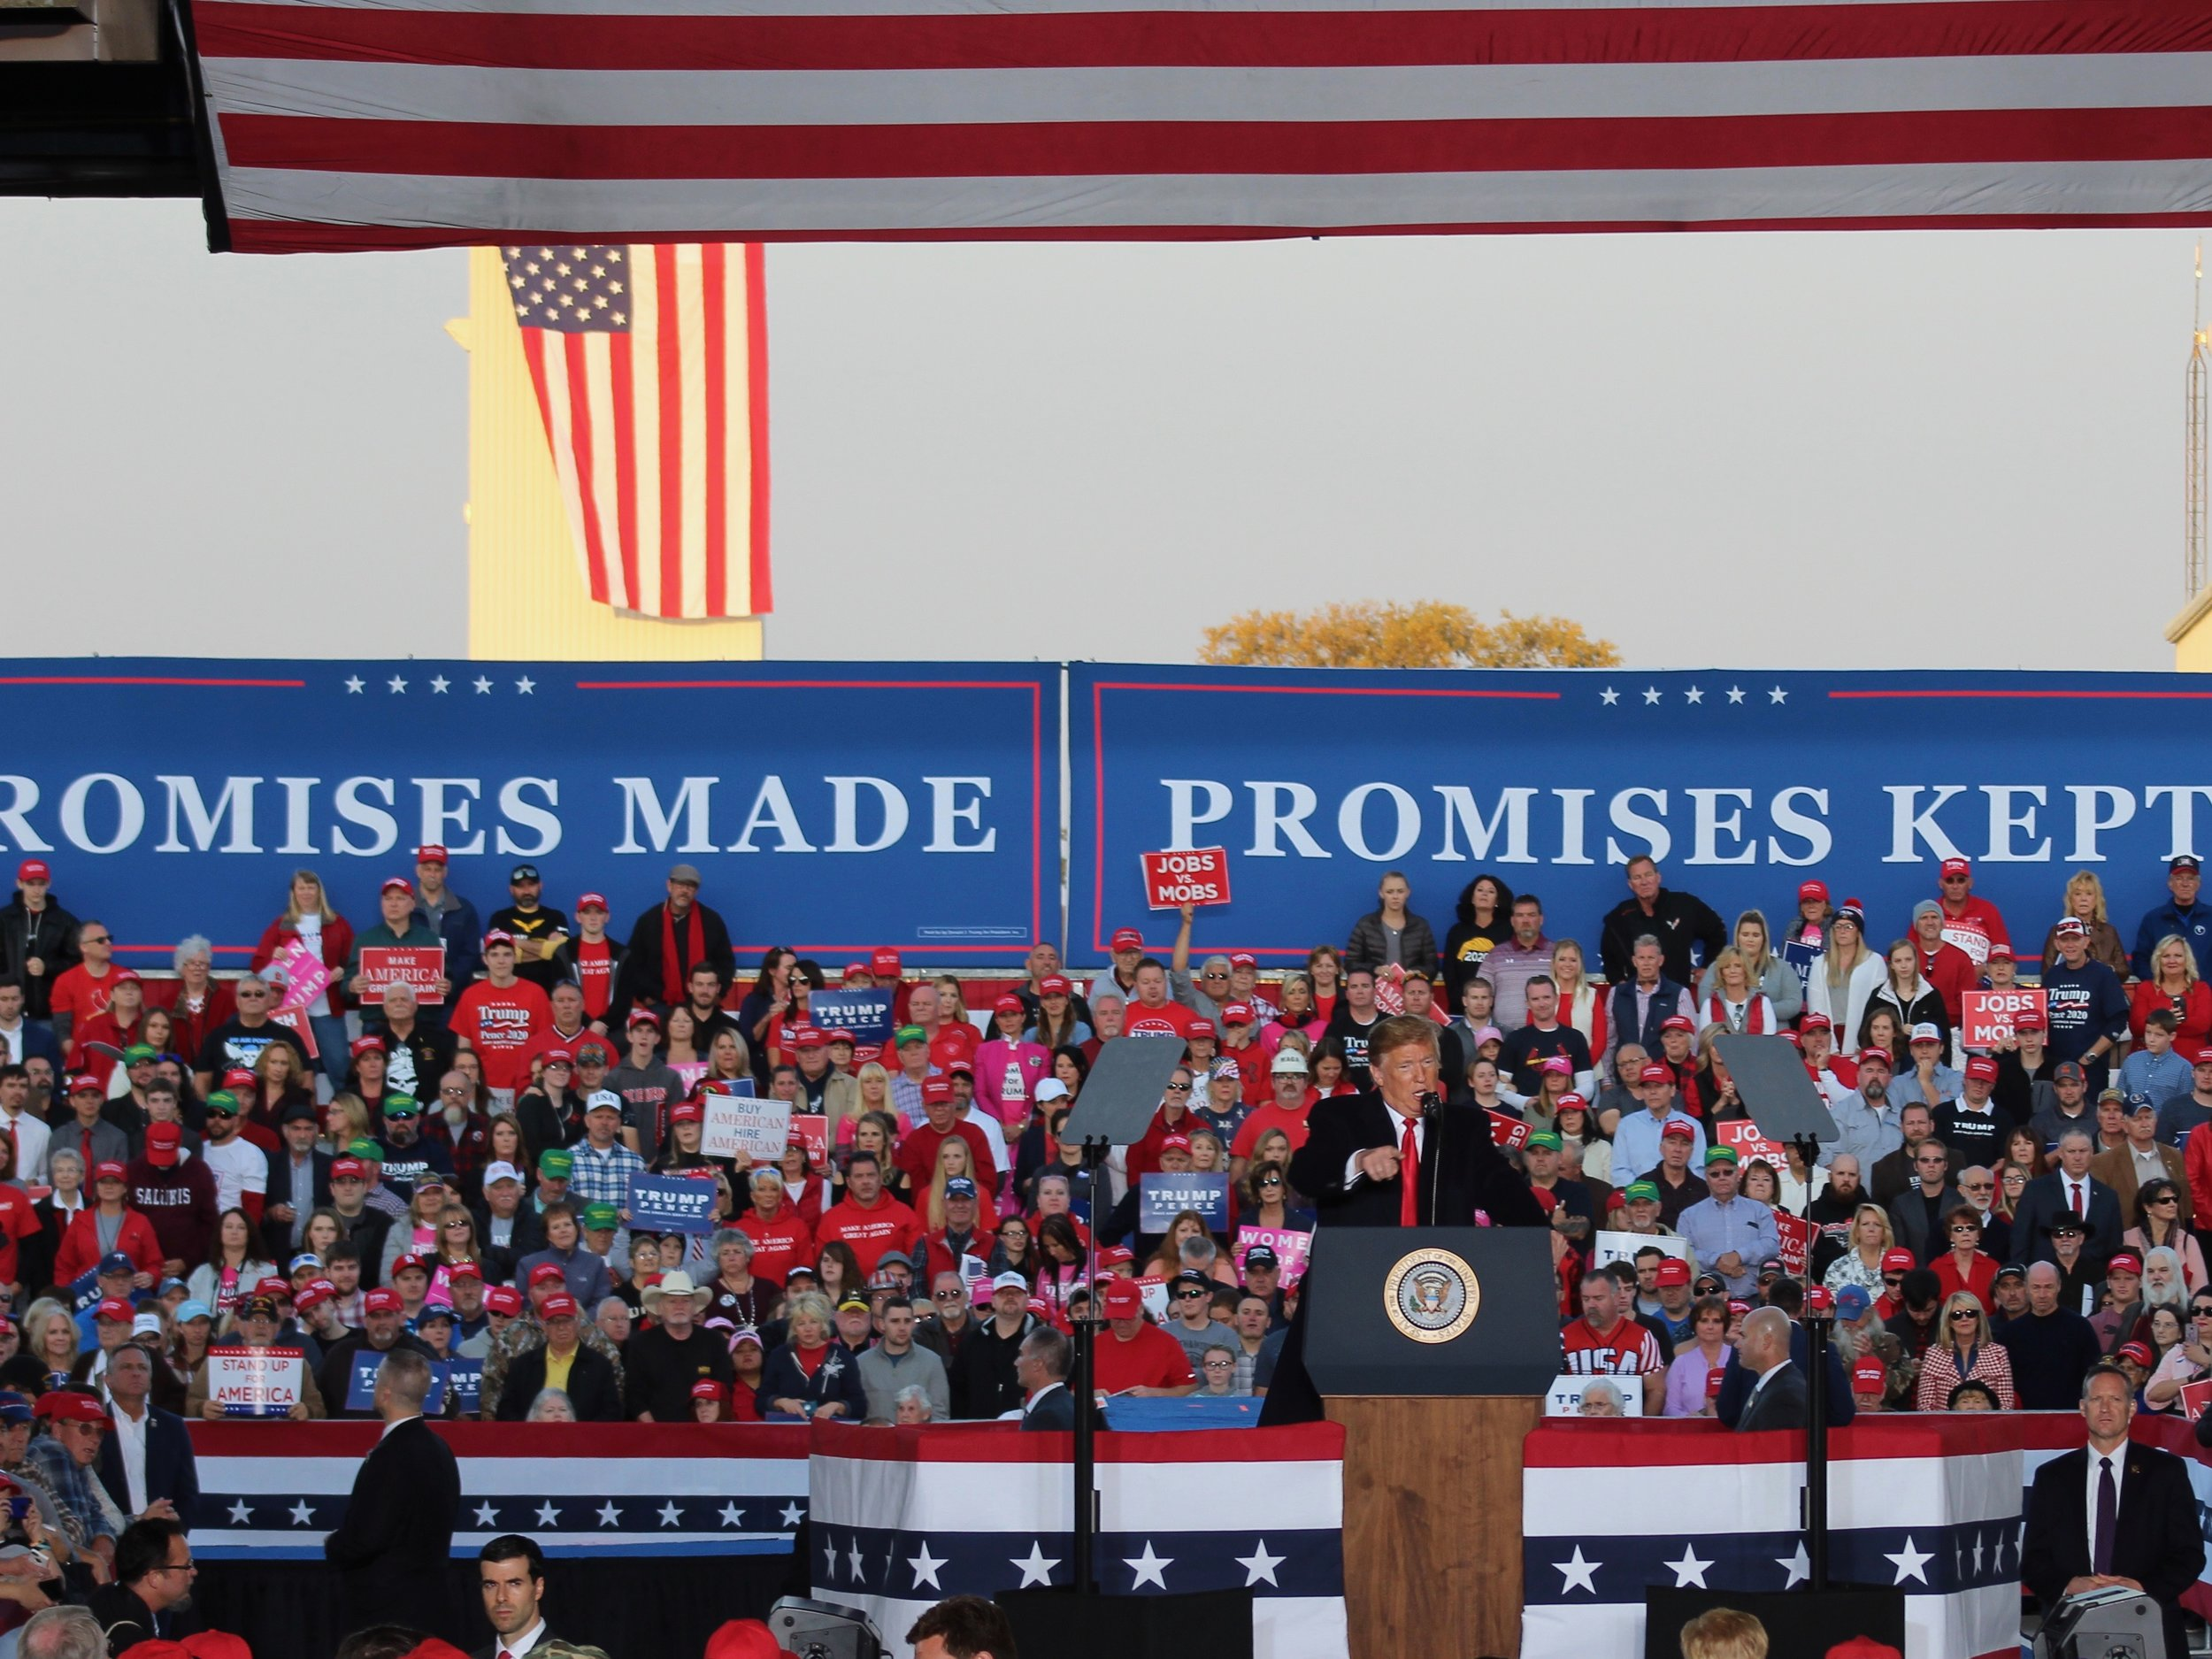 President Trump addresses supporters in Murphysboro last fall. (One Illinois/Ted Cox)